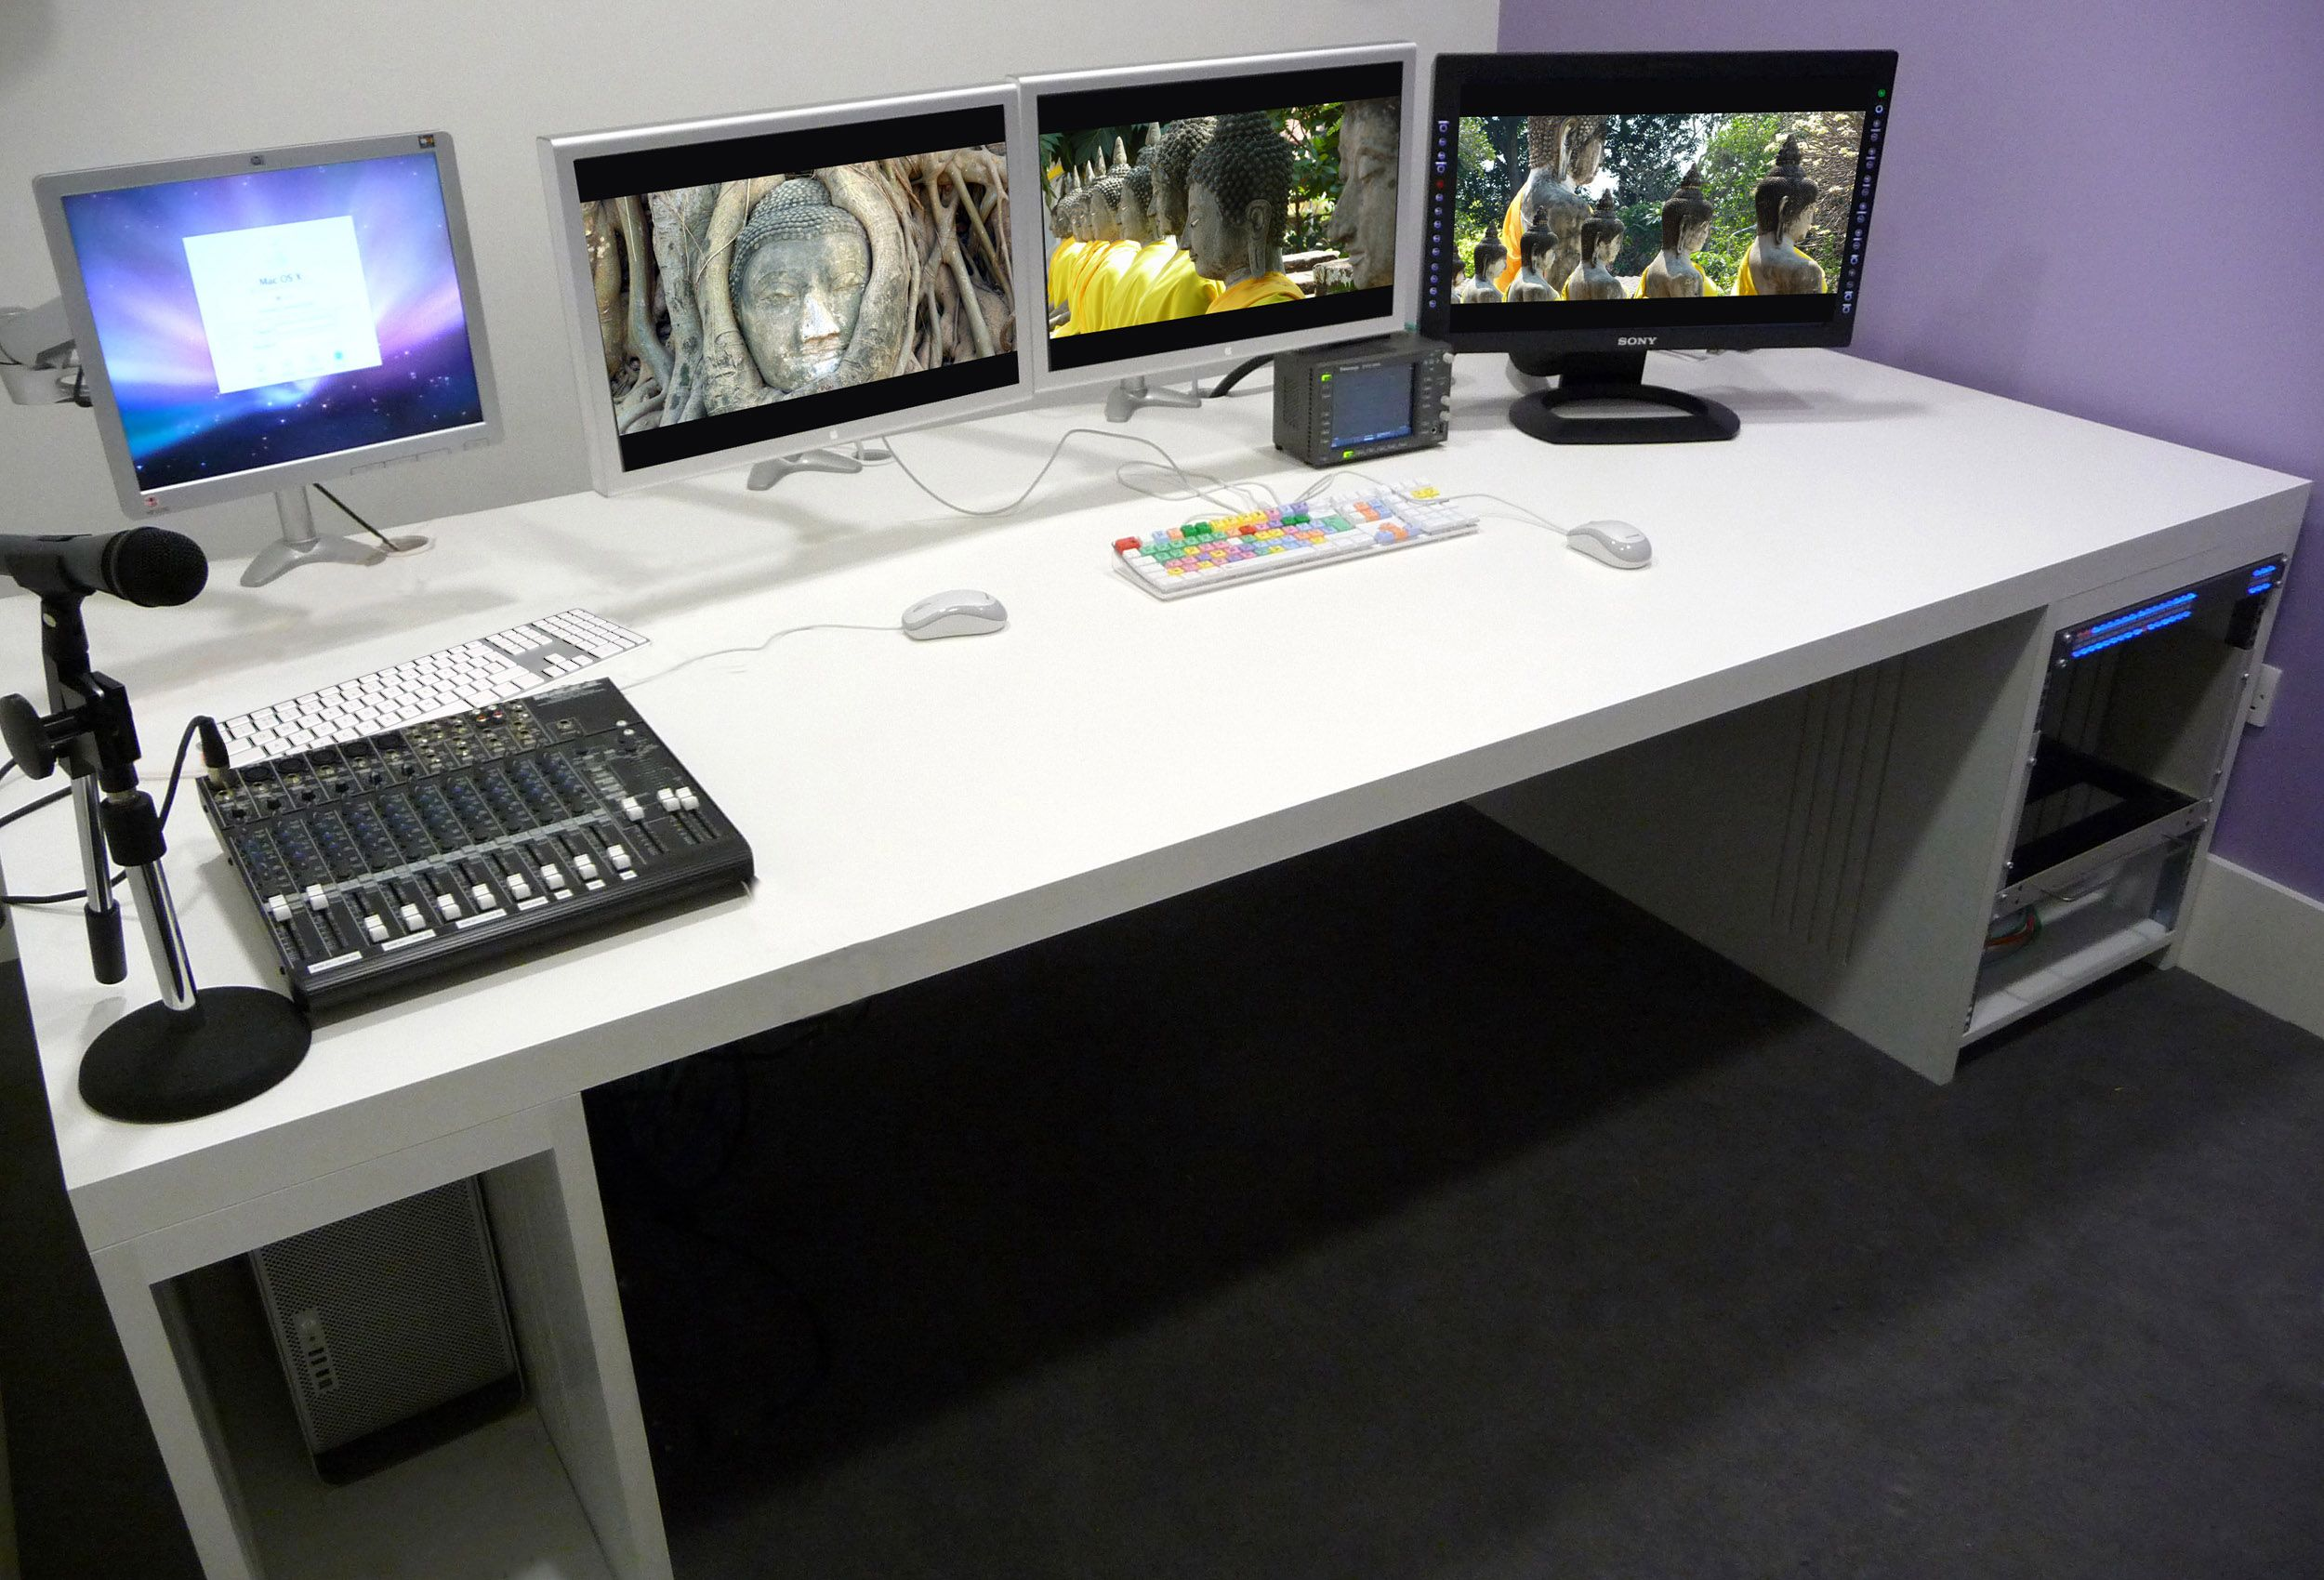 Video Editing Desks Google Search Video Editing Desks Pinterest Desks Google Search And